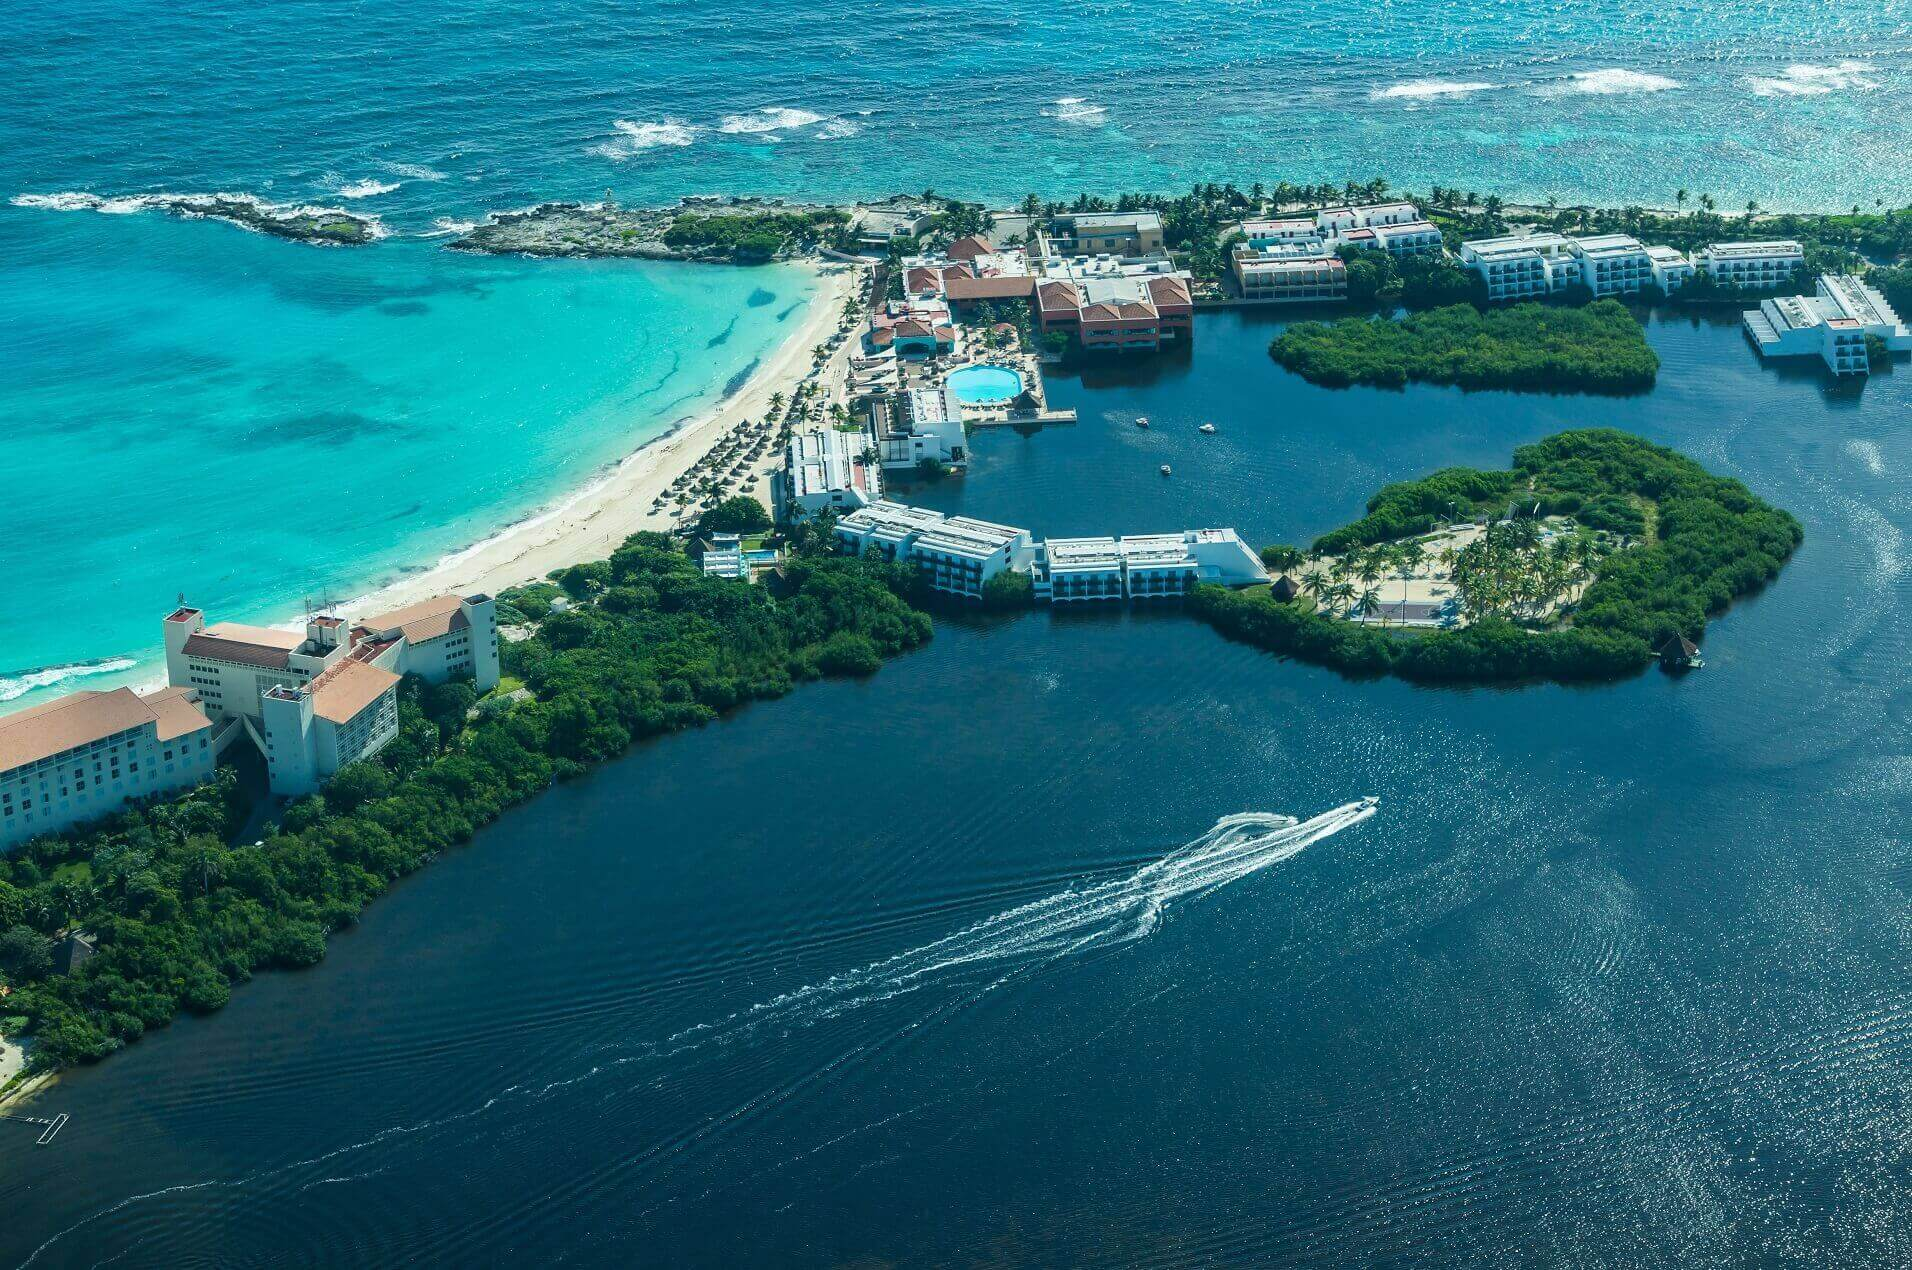 Premier Hotels in Cancun